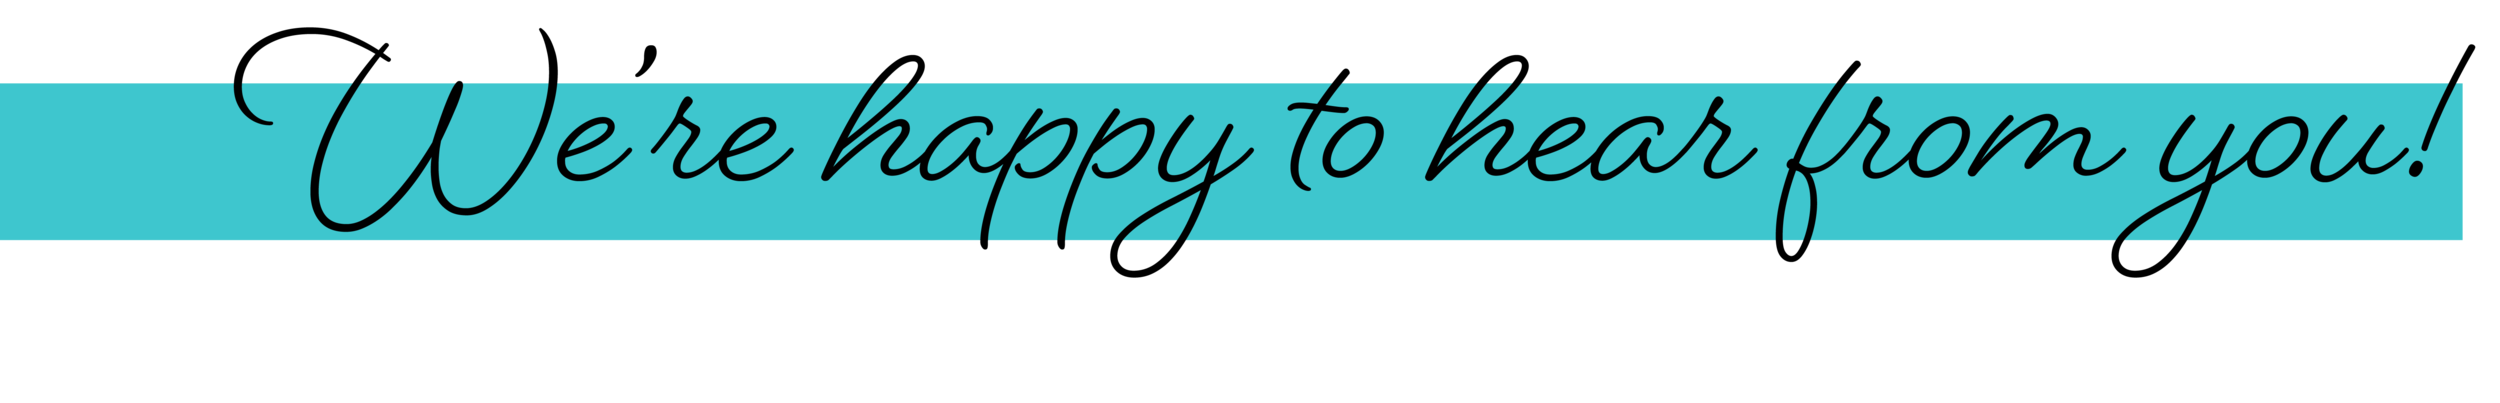 Happy to hear from you (Contact page).png